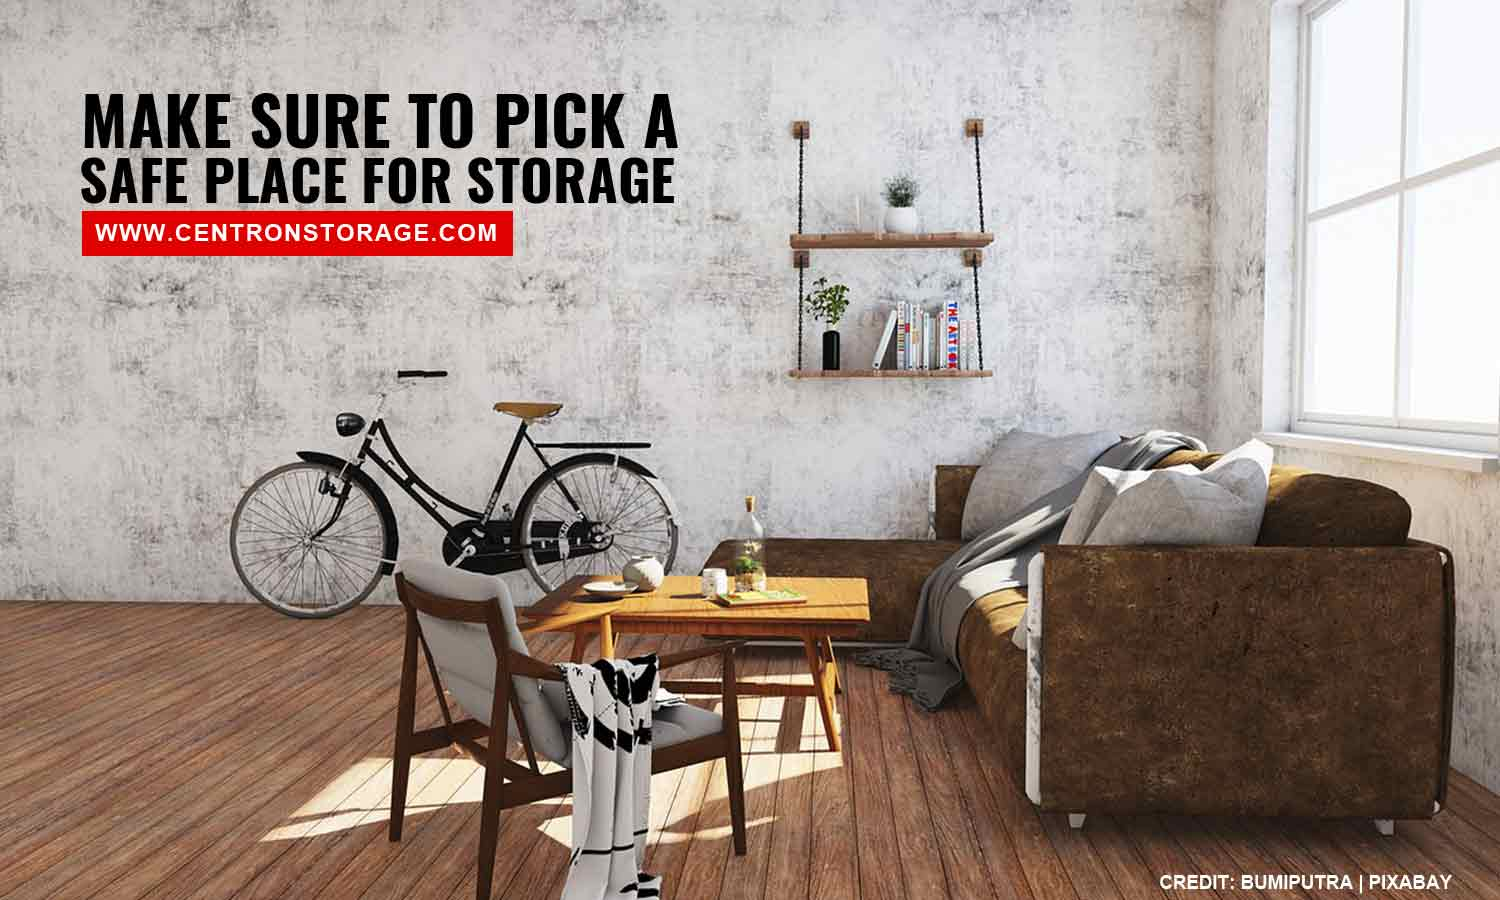 Make sure to pick a safe place for storage